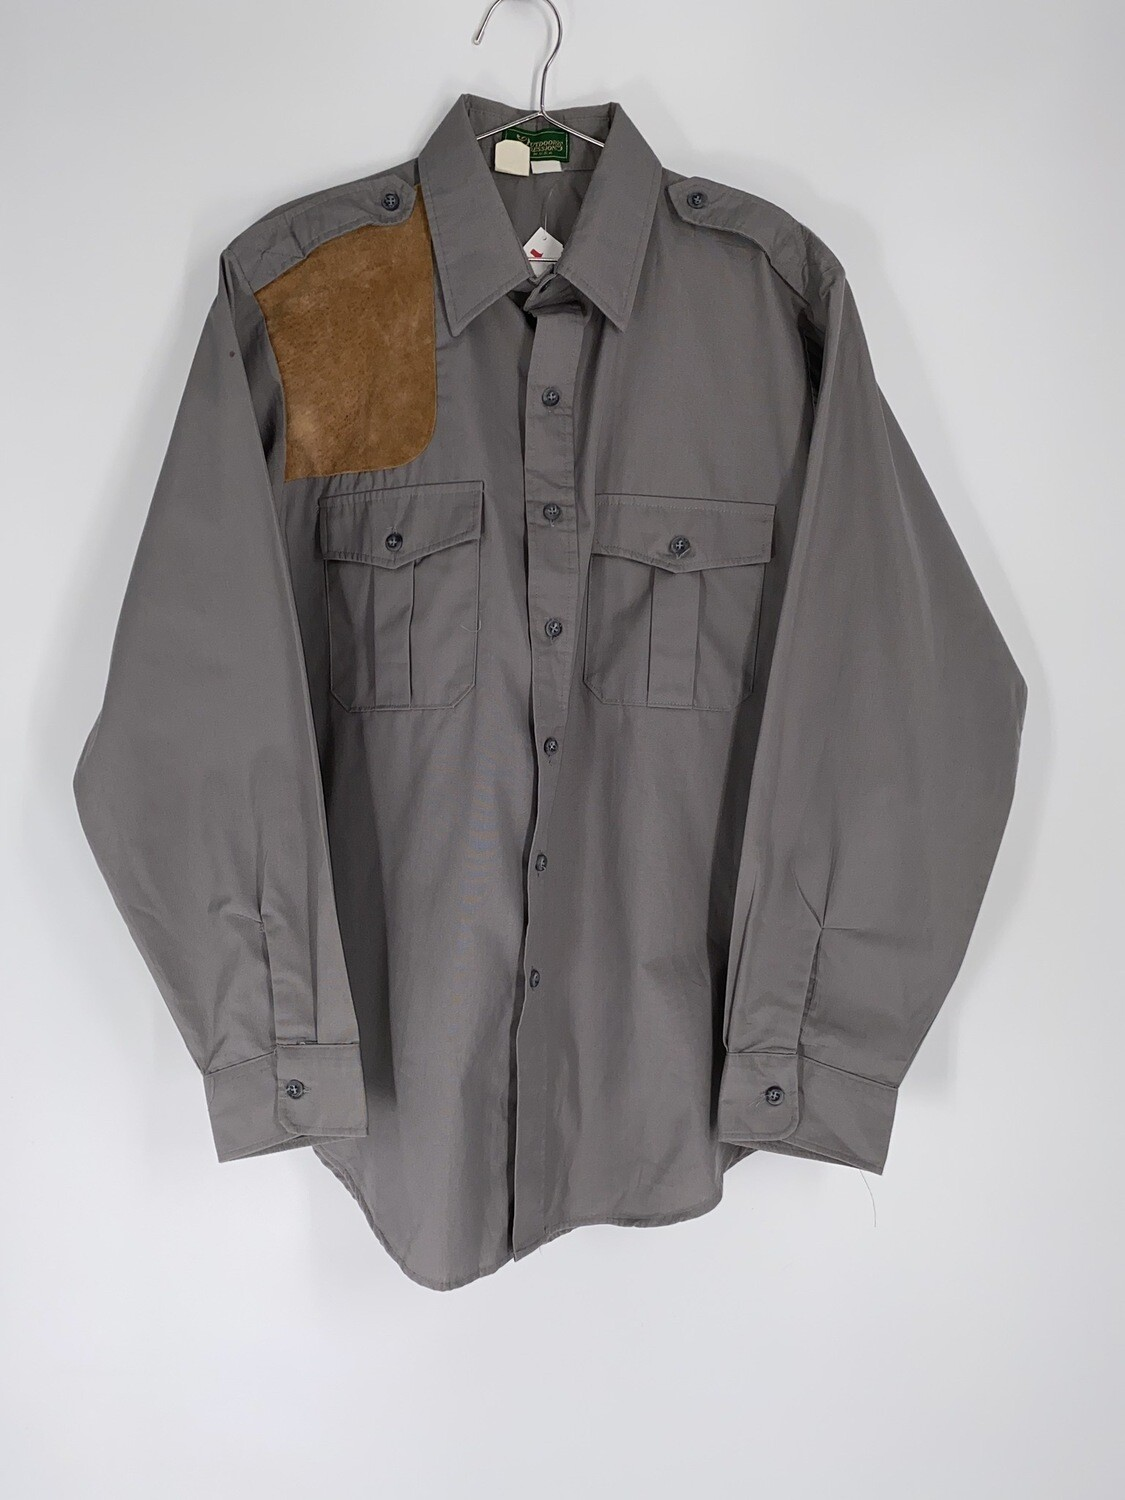 Outdoor Impressions Long Sleeve Button Up Size L